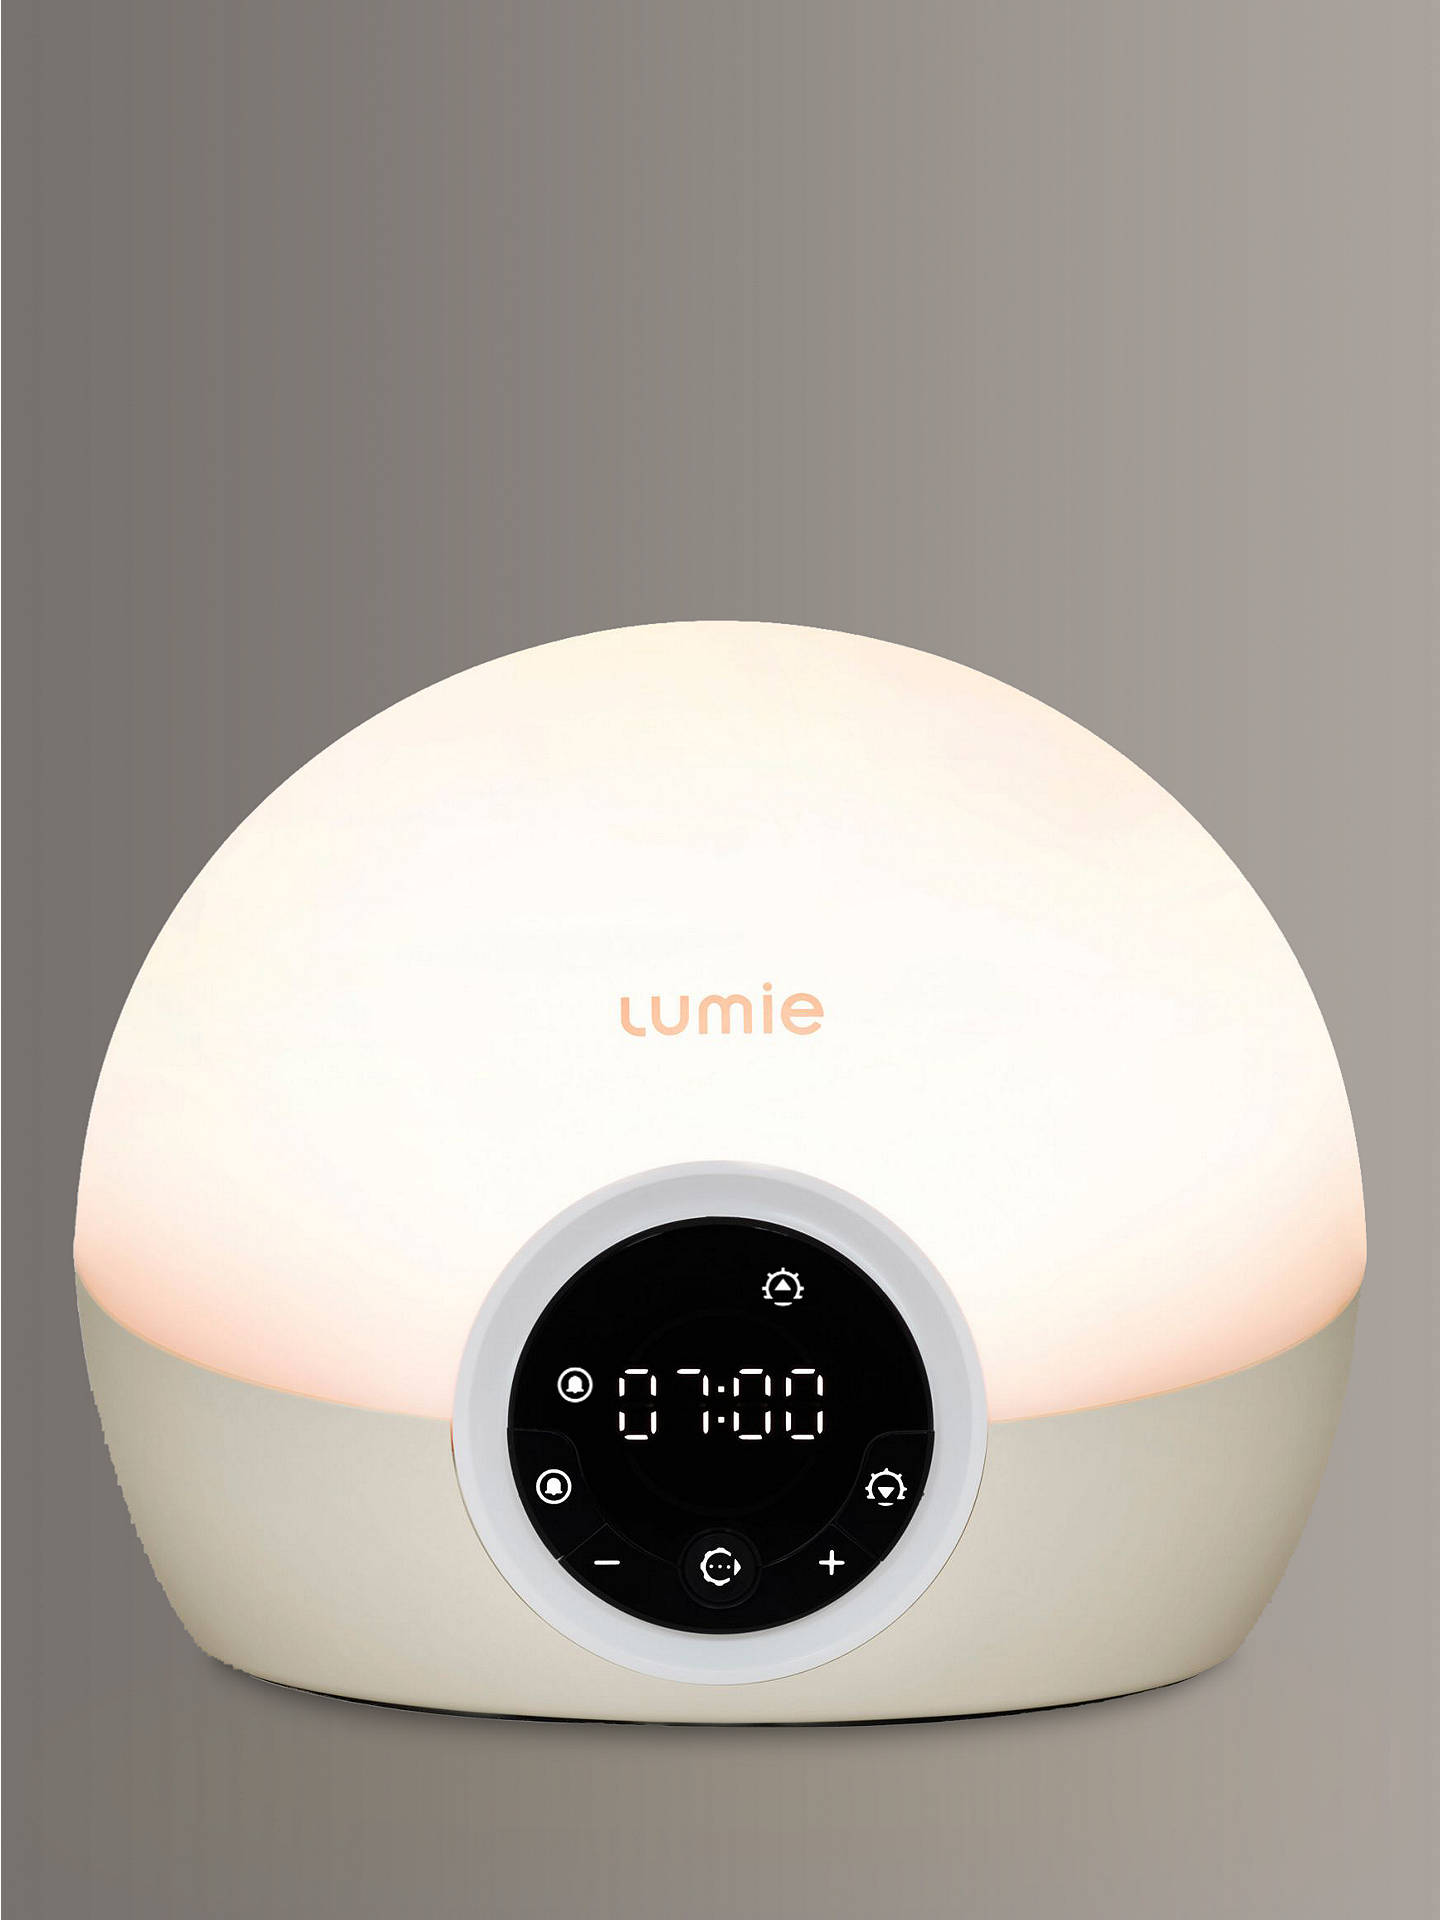 Buy Lumie Bodyclock Spark 100 Wake up to Daylight SAD Light Online at johnlewis.com